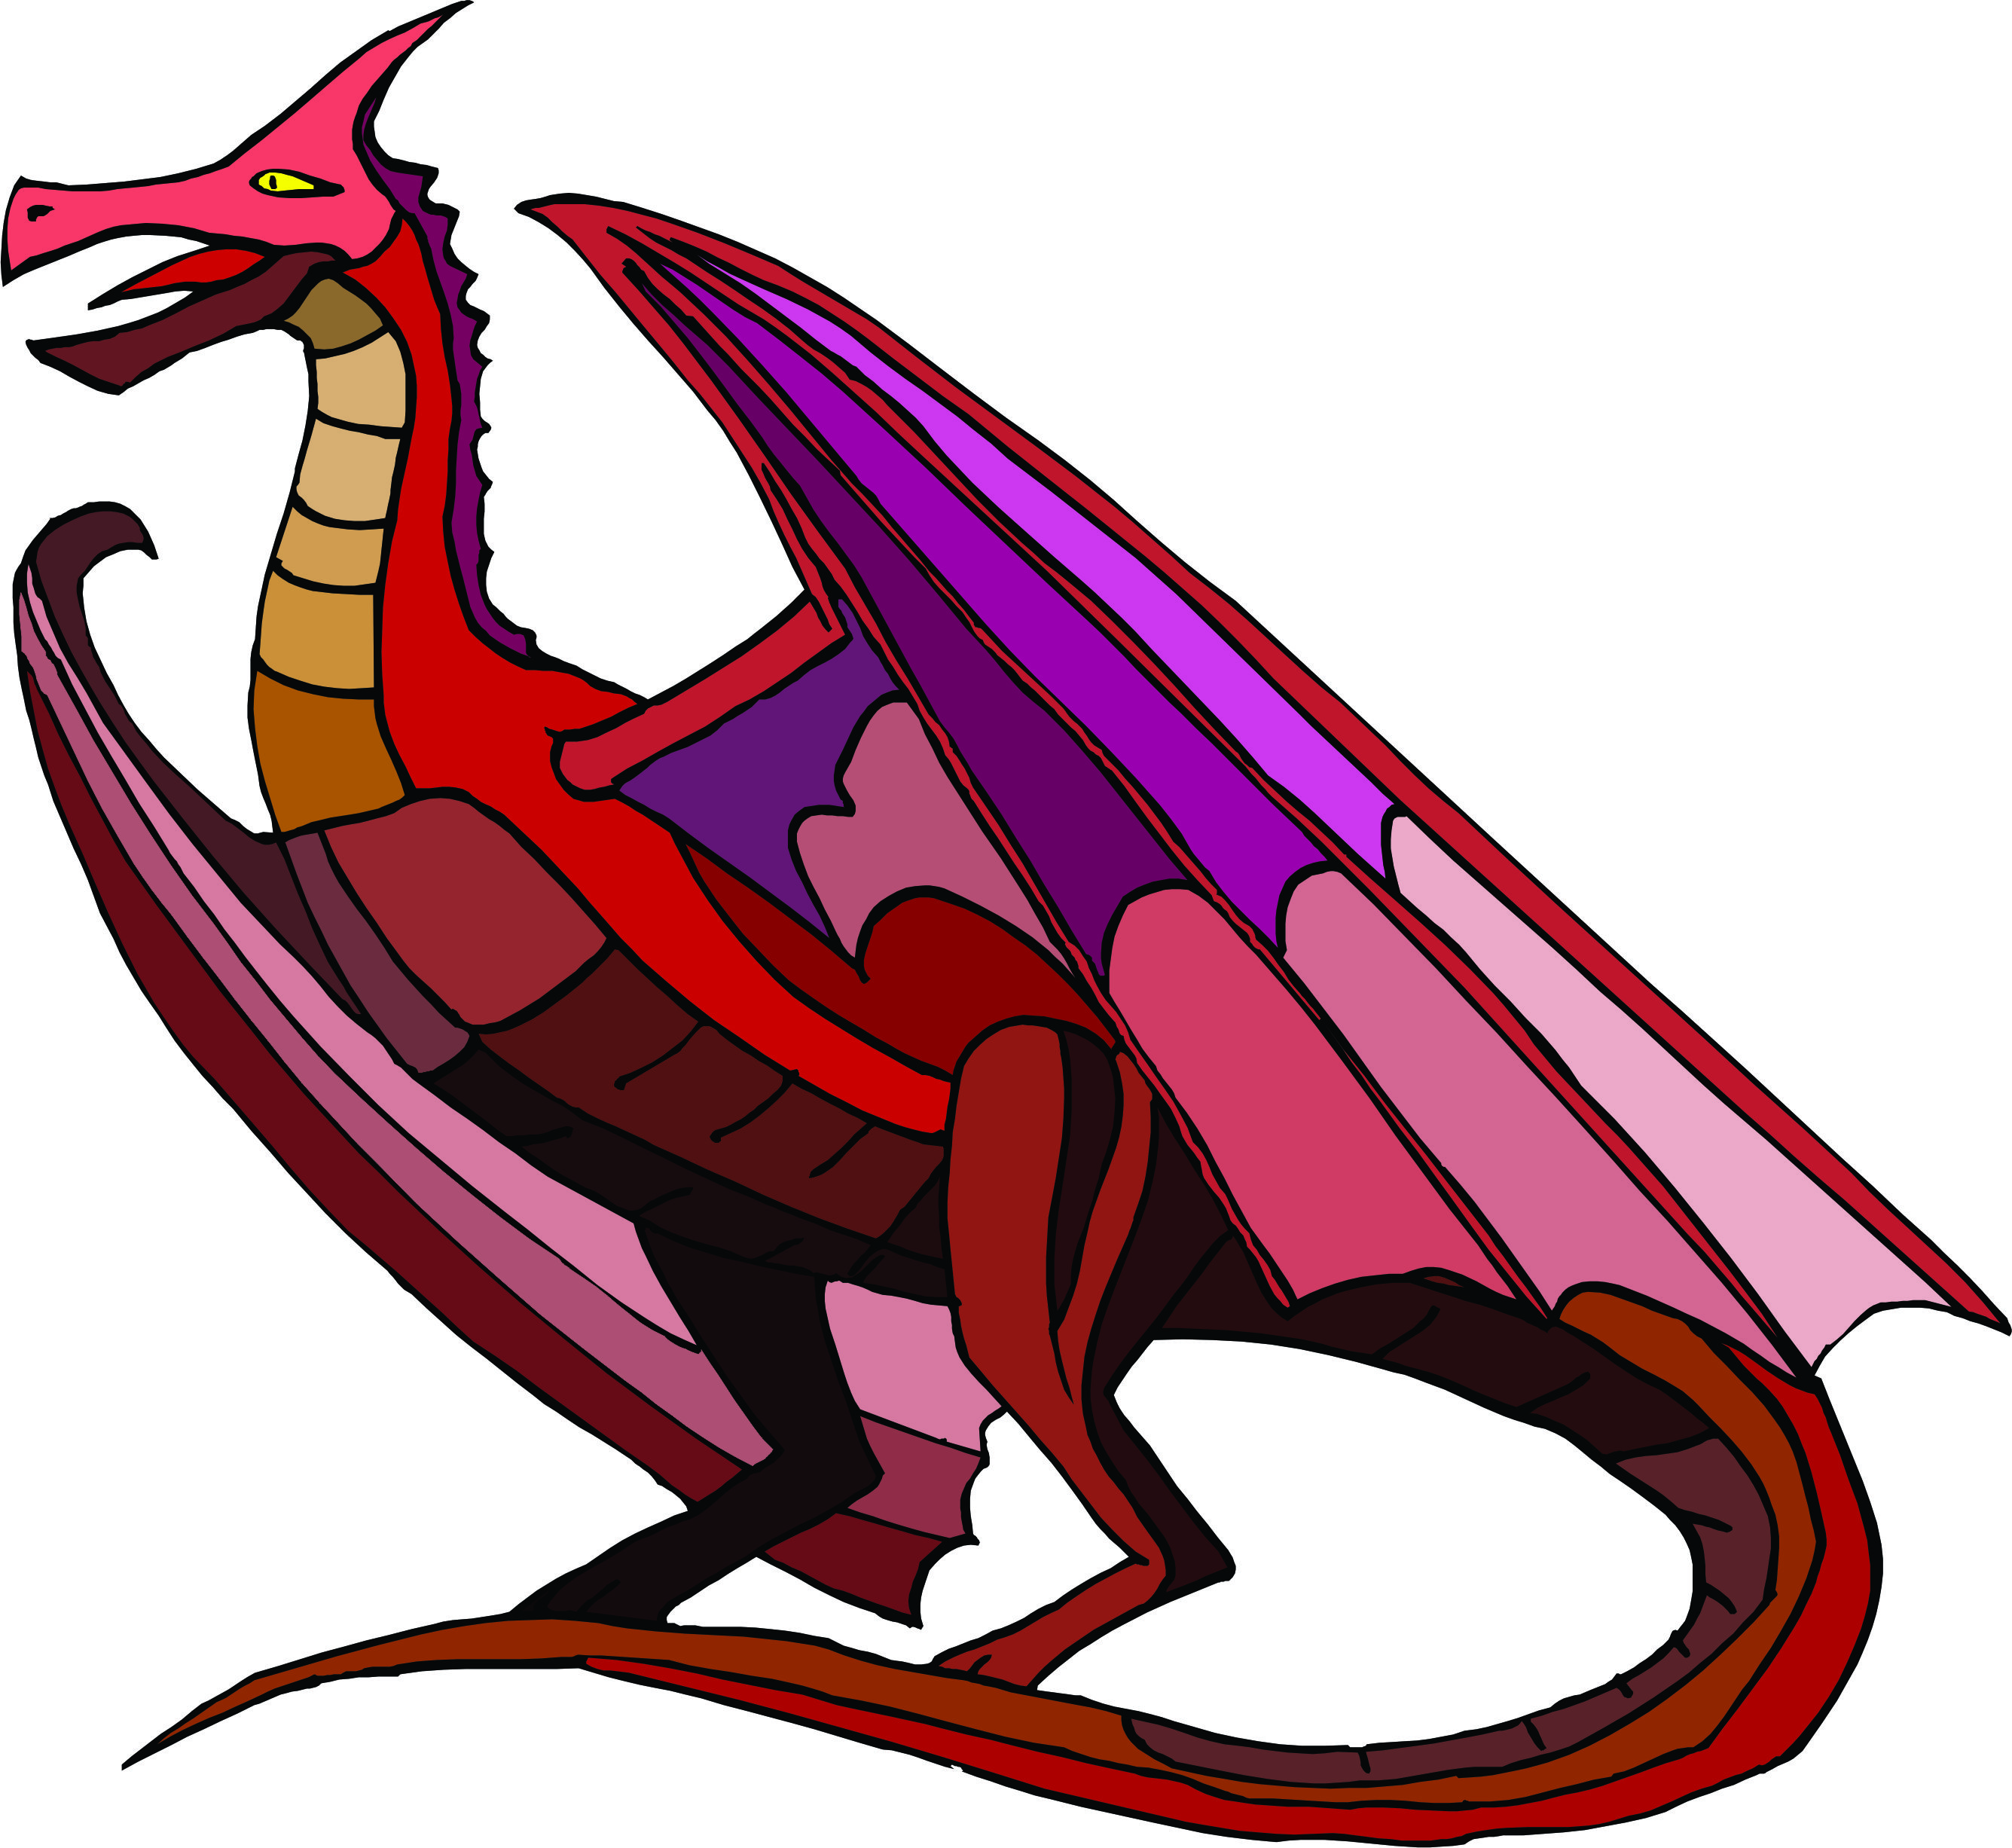 Cartoon Red Dragon Wallpaper From Dragons Wallpapers - ClipArt ...